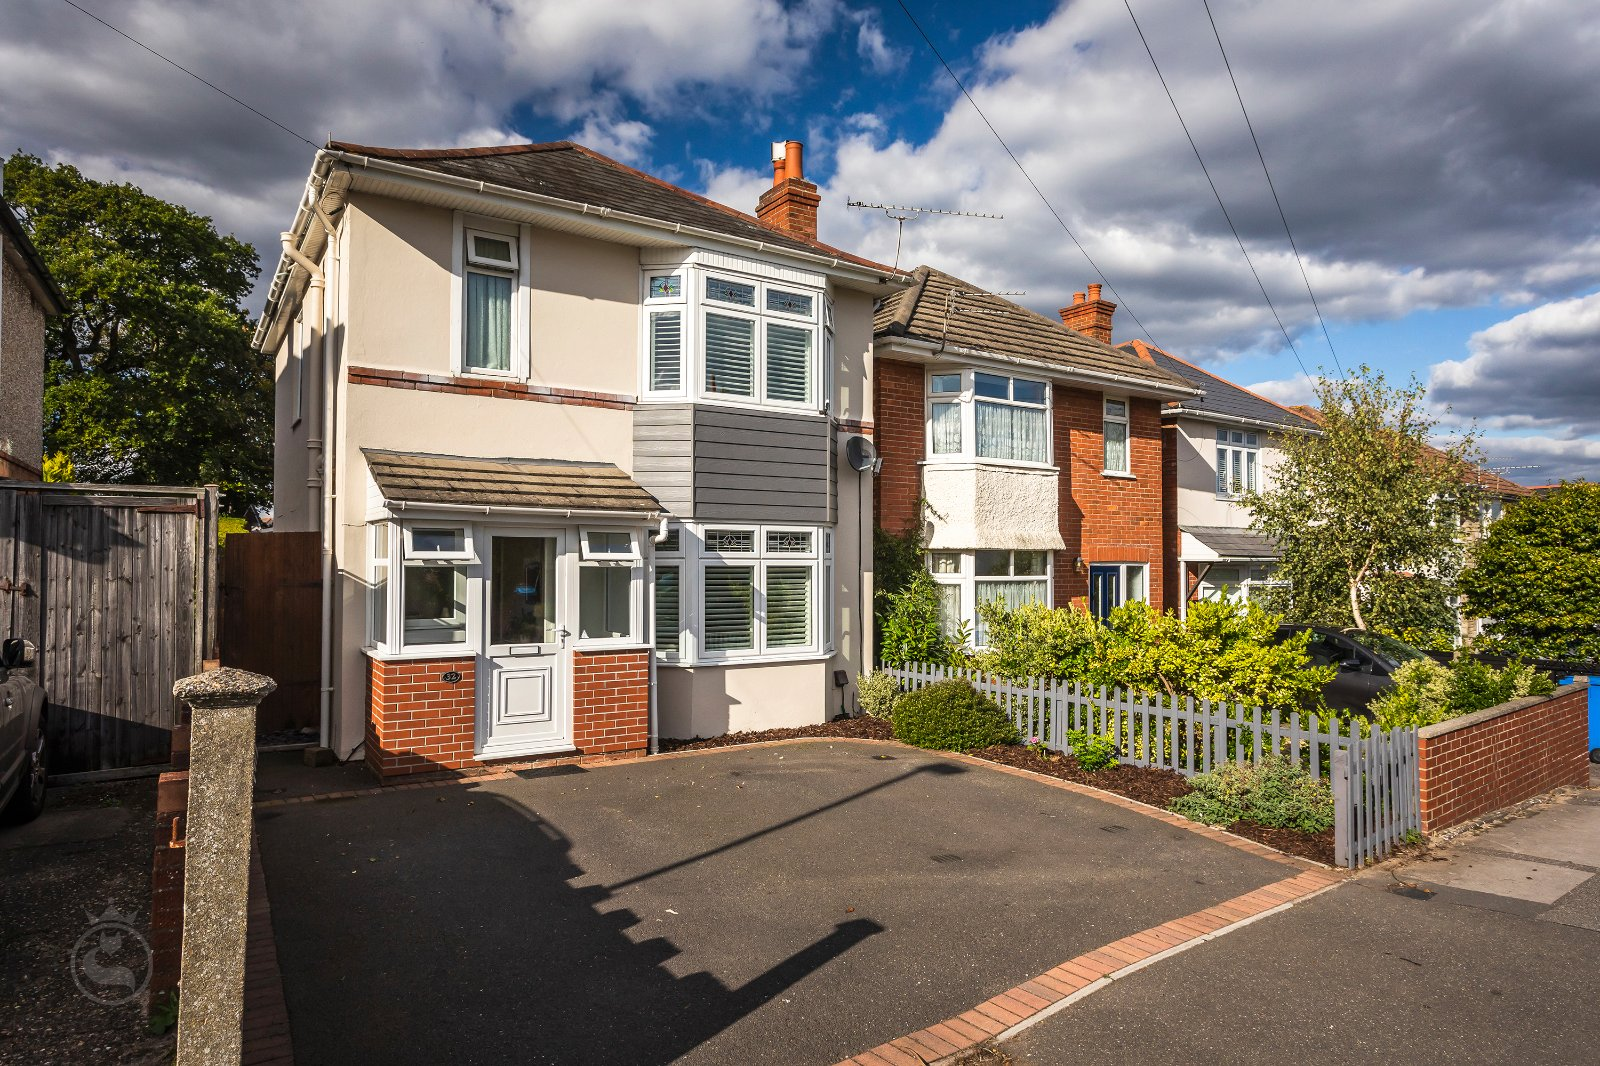 3 bed house for sale in Branksome - Property Image 1